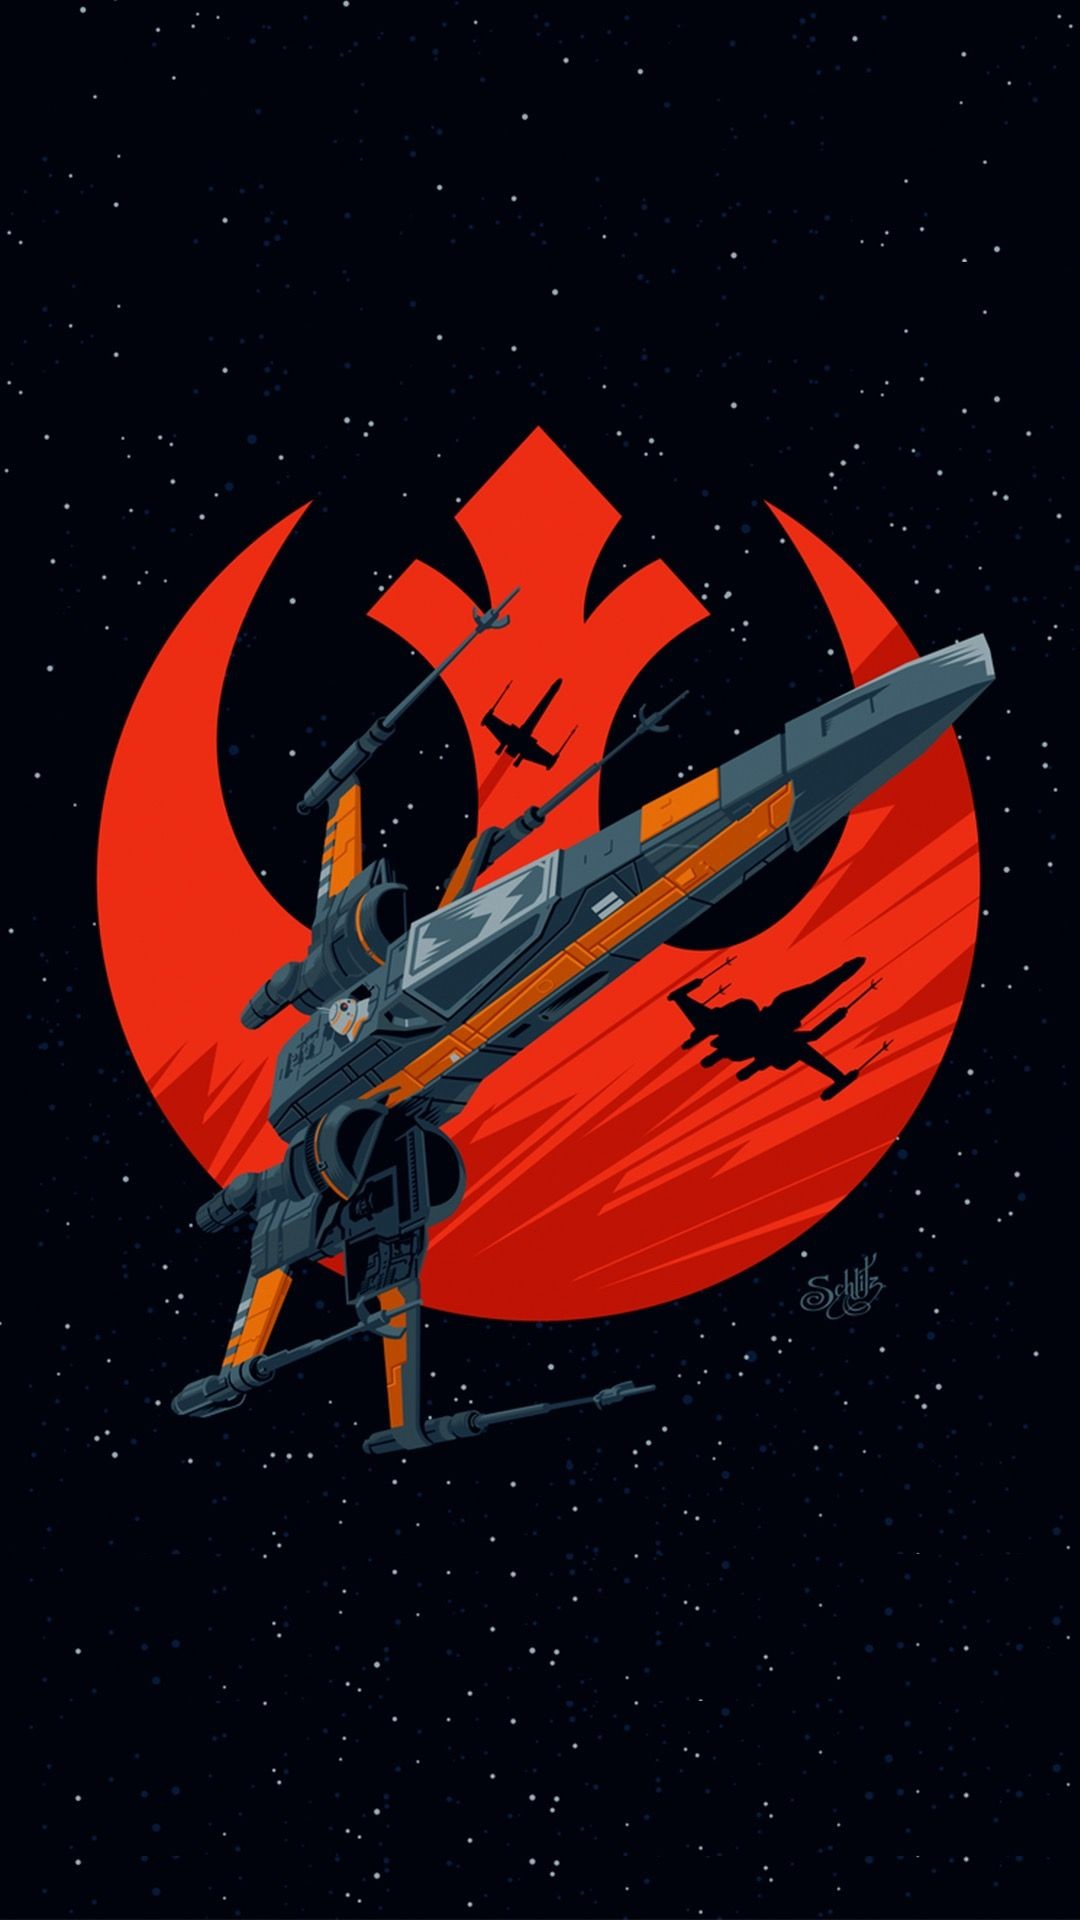 Wallpaper Of Star Wars Posted By Zoey Johnson